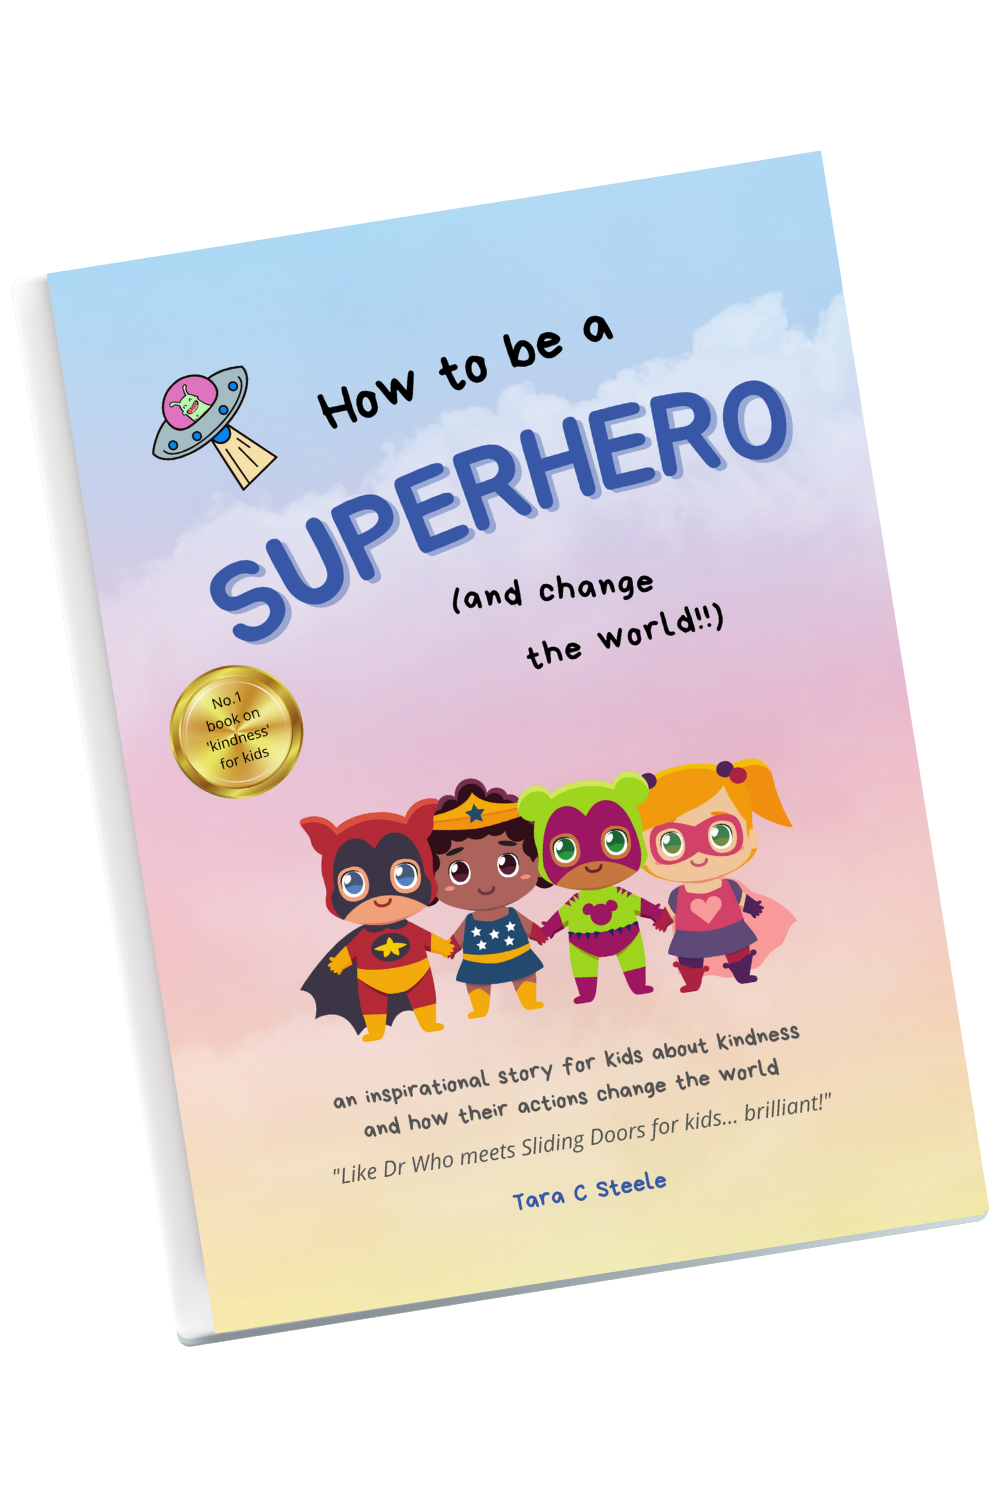 Book on Kindness for Kids How to be a Superhero